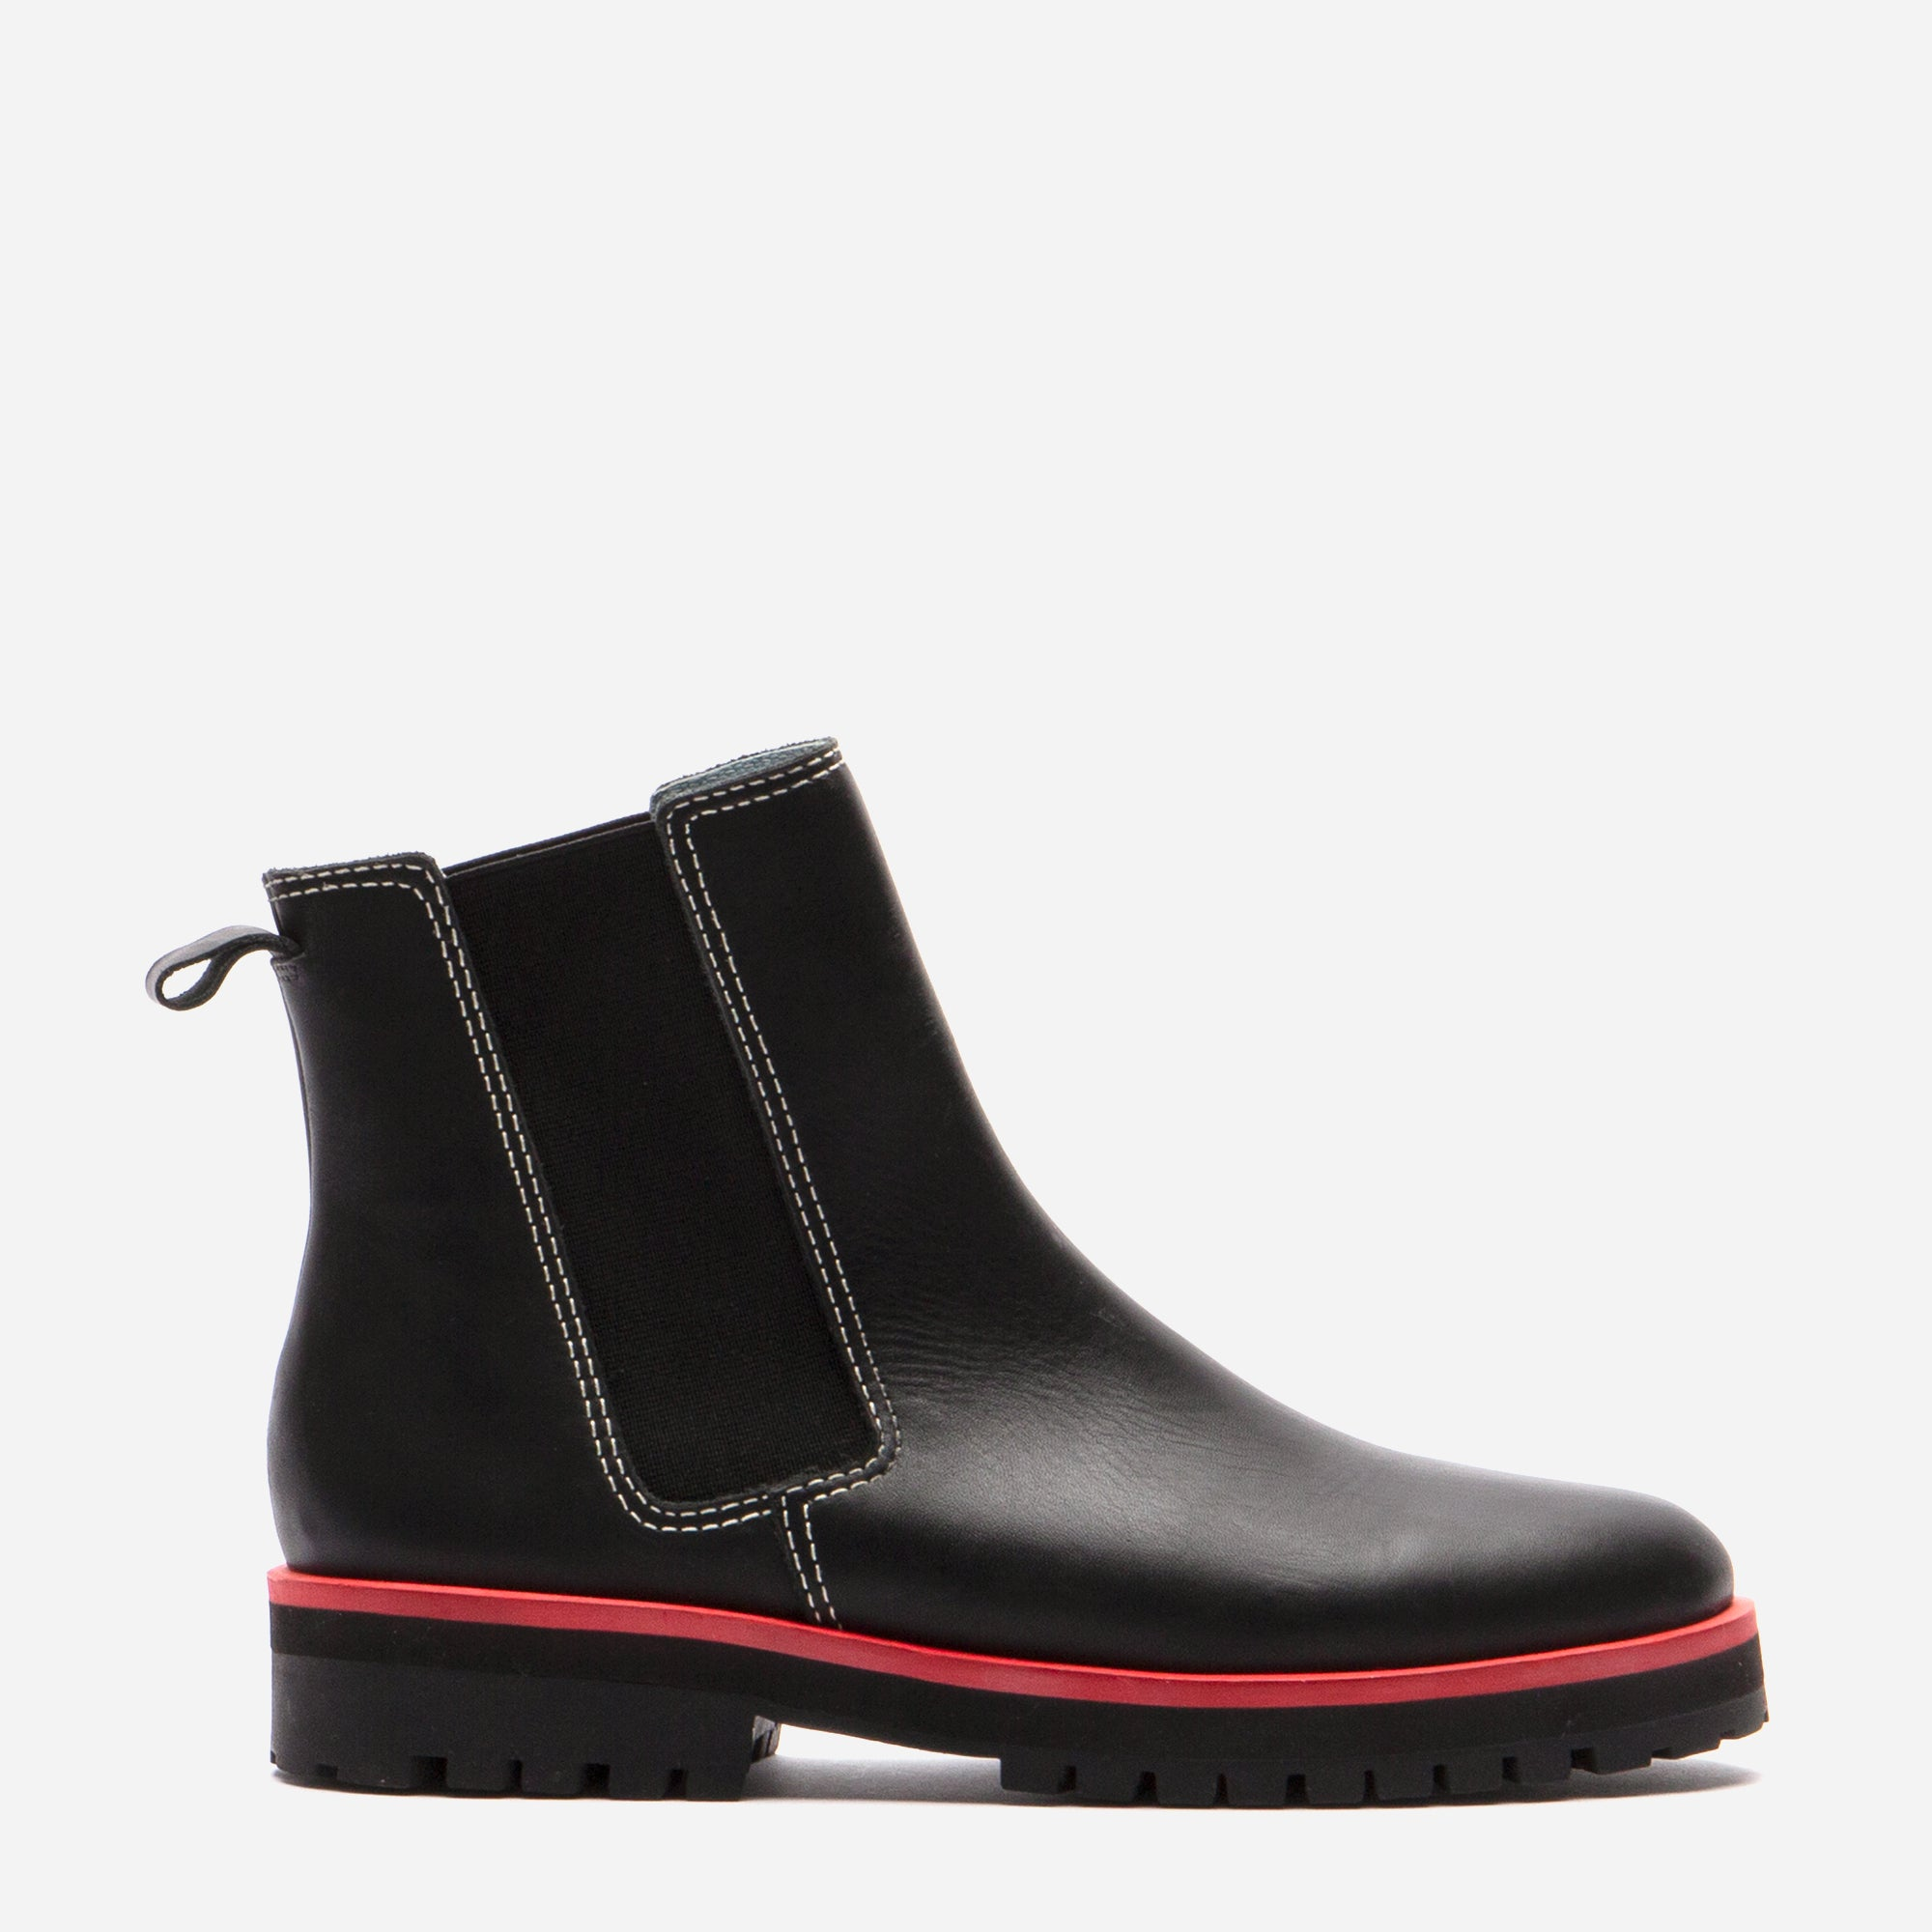 Frank Leather Chelsea Lug Boot Black - Frances Valentine